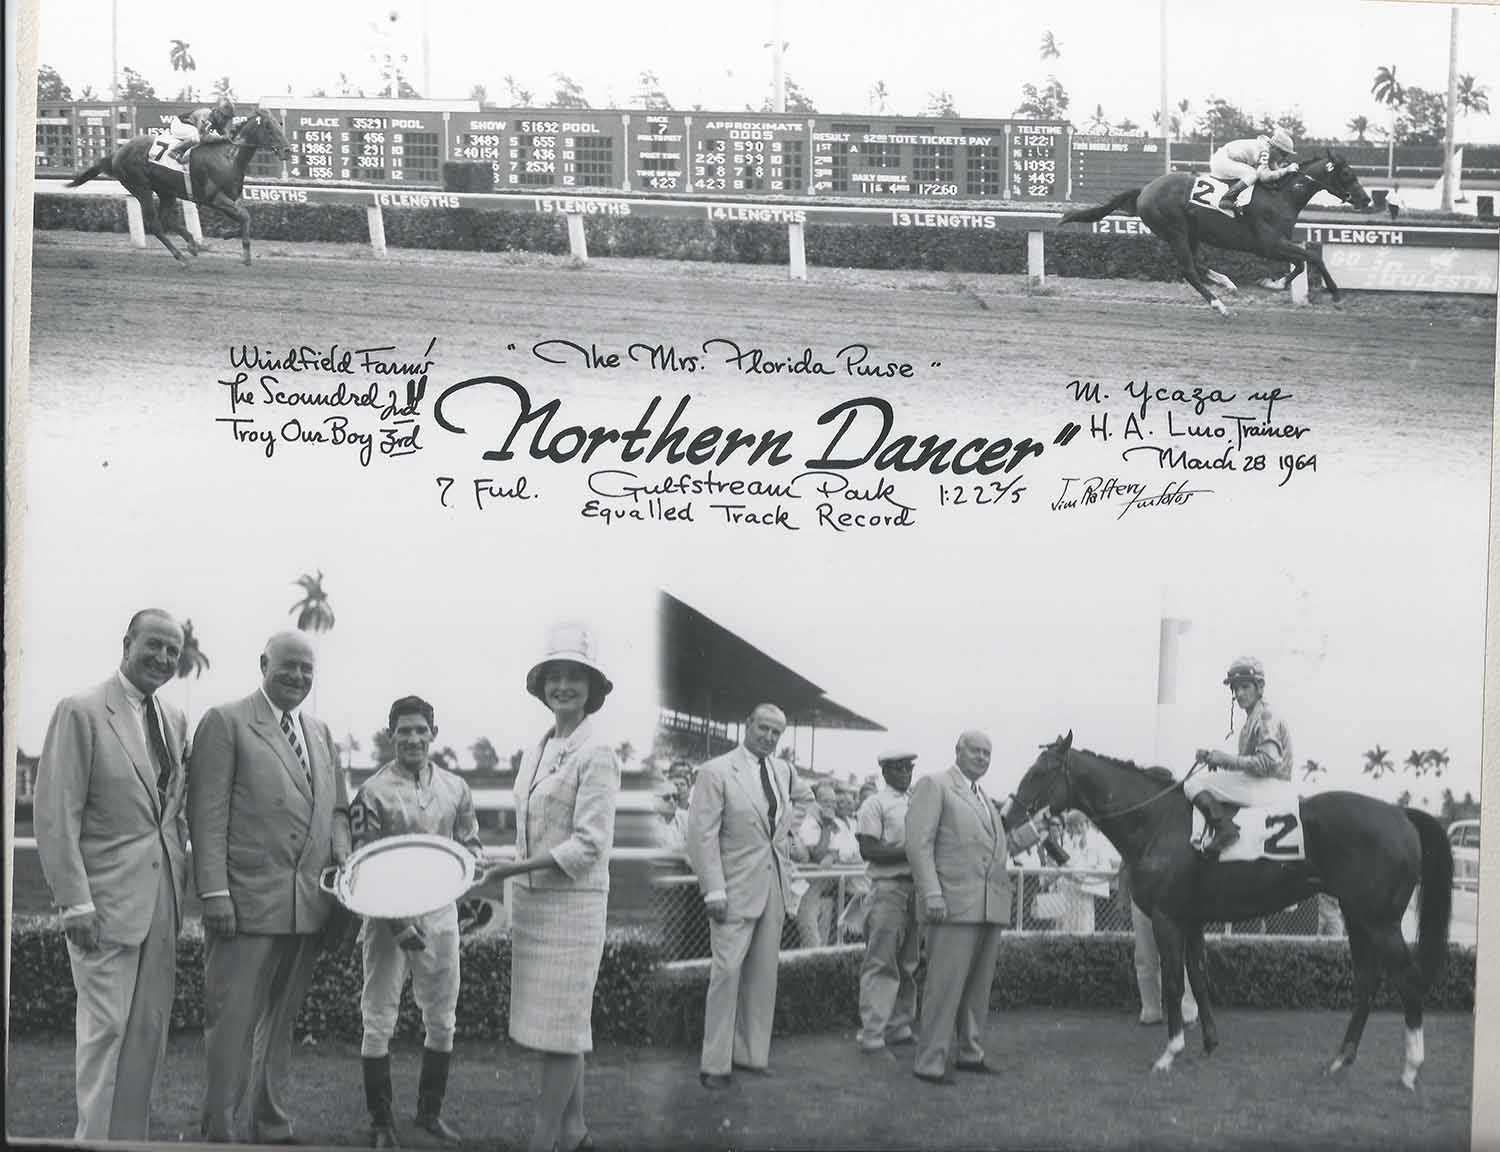 Ycaza and Northern Dancer (Provided by the Woodbine Archives)